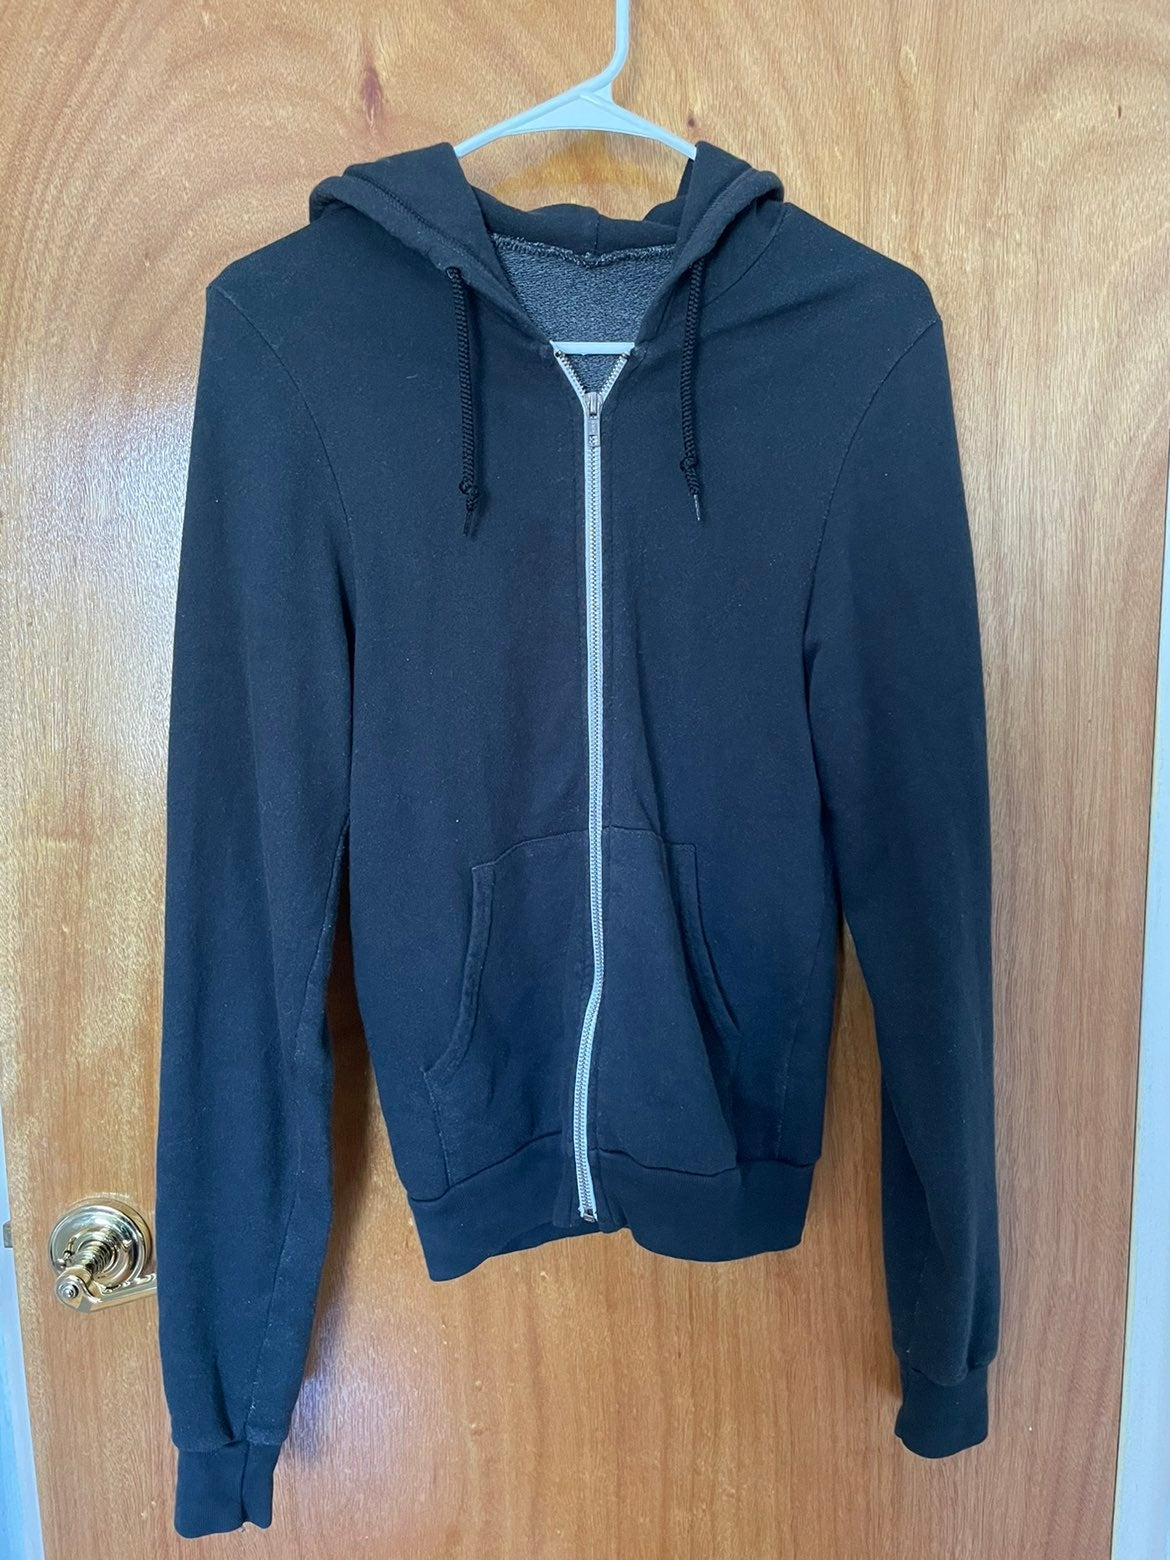 Navy American Apparel Zip up Hoodie